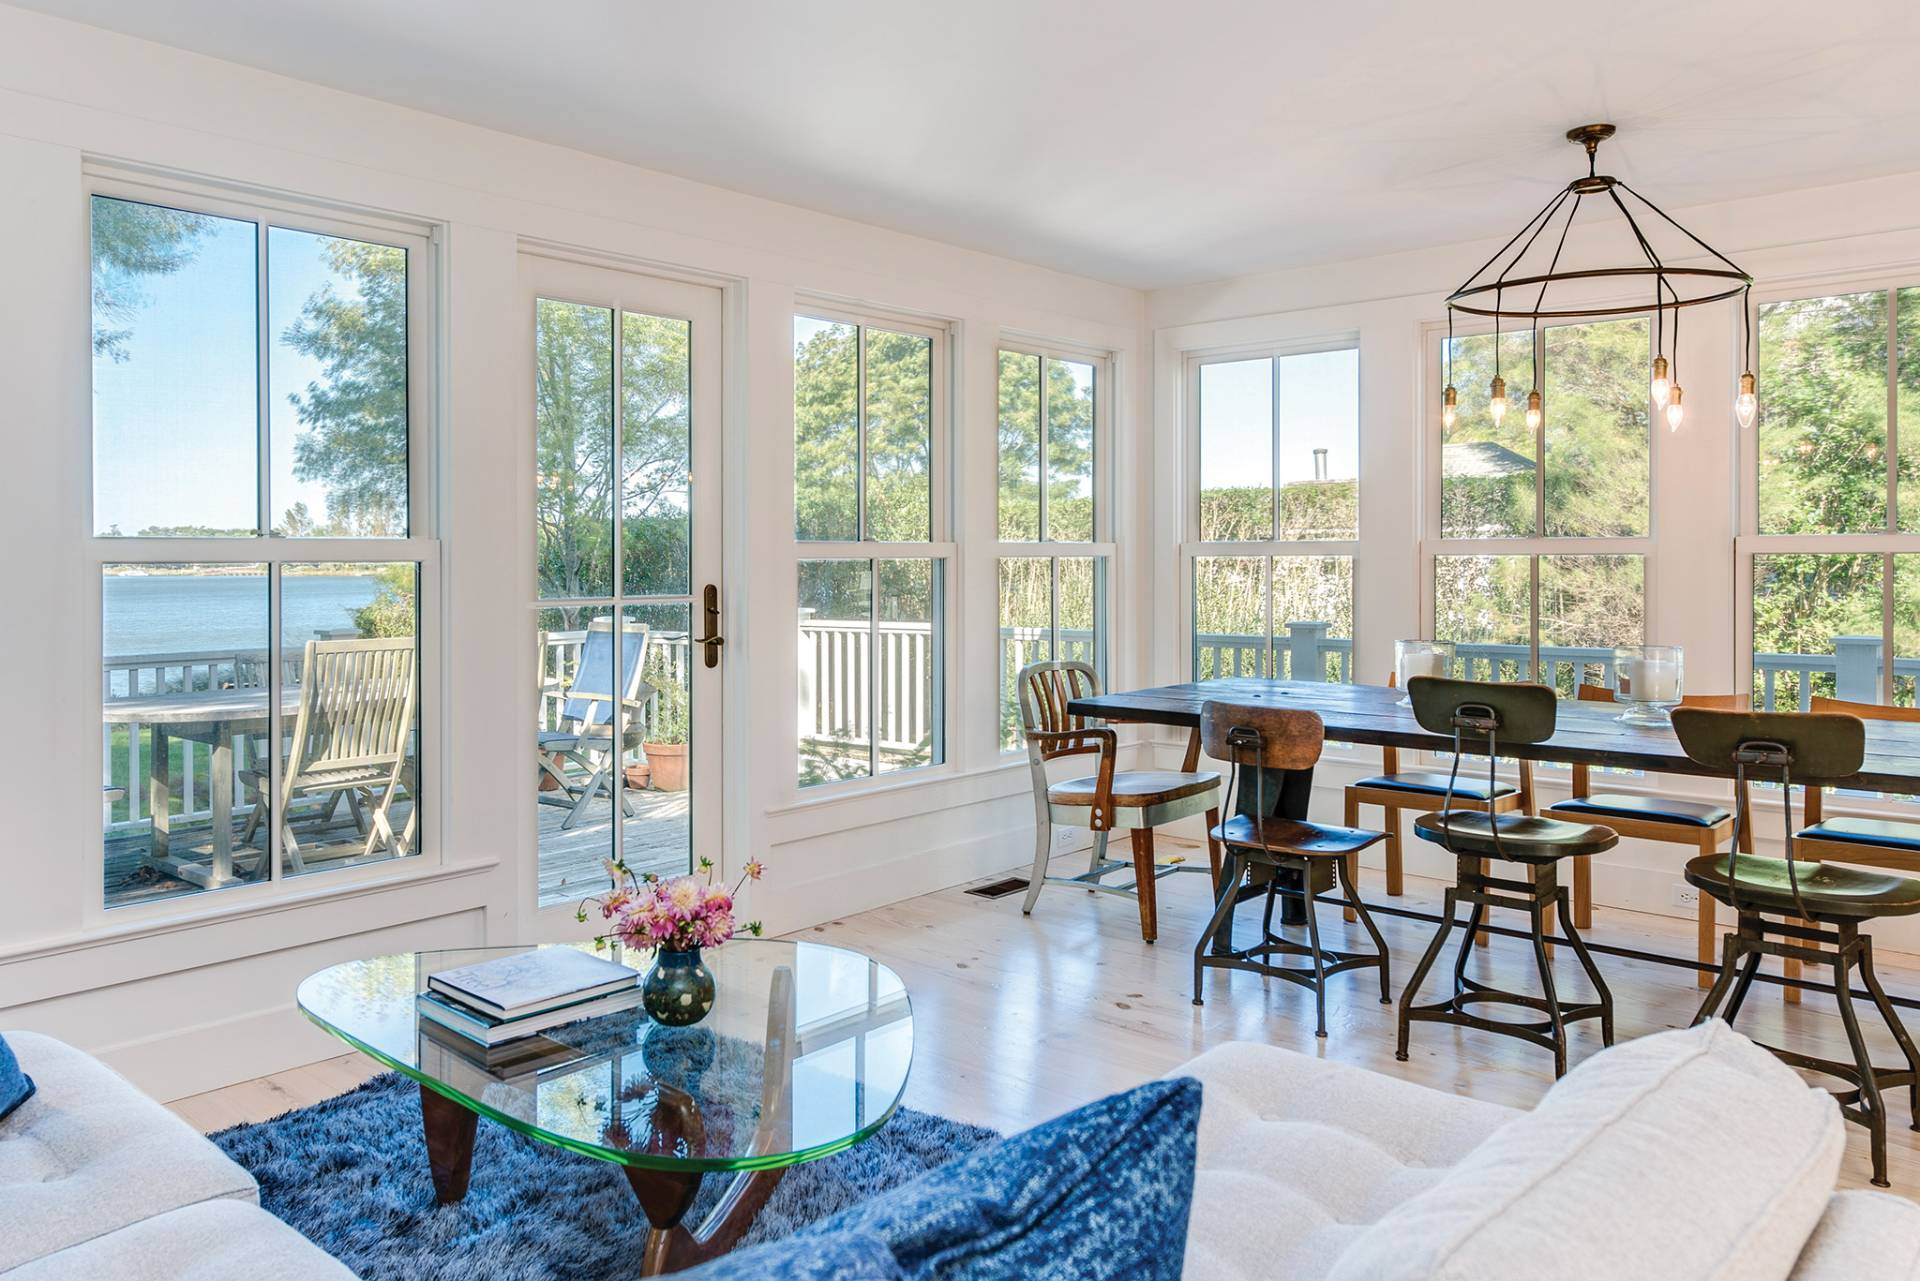 Single Family Home for Sale at Quintessential Sag Harbor Waterfront 52 John Street, Sag Harbor, New York